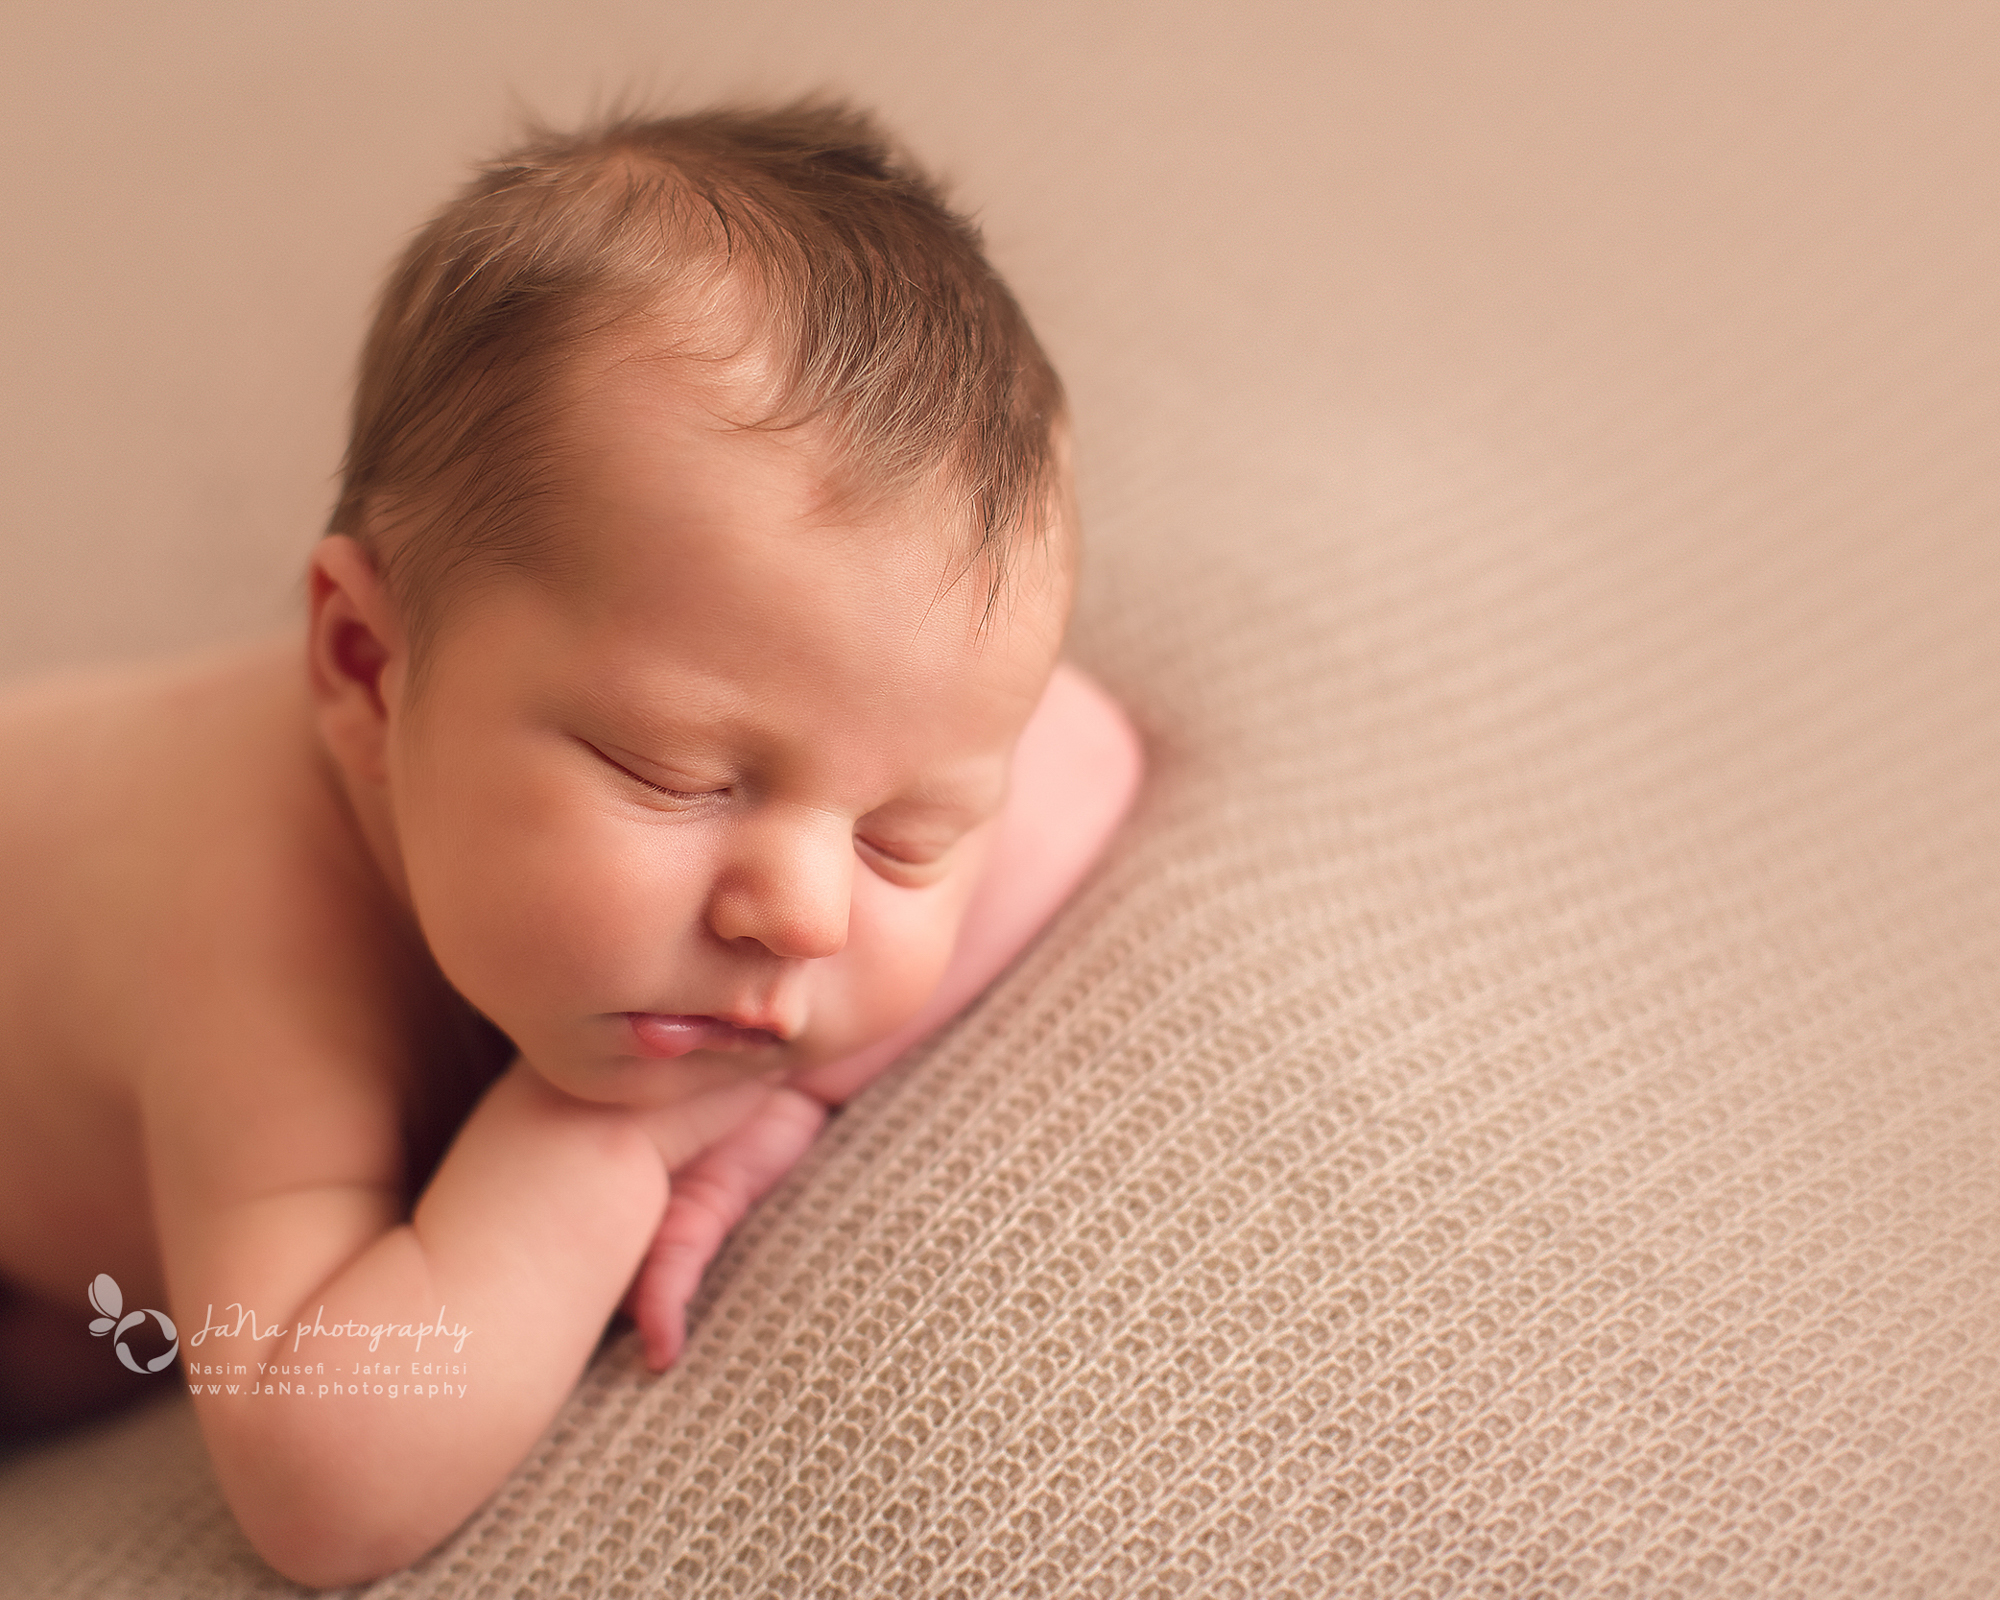 JaNa_Photography_Newborn photography Vancouver – Burnaby | Diego-1